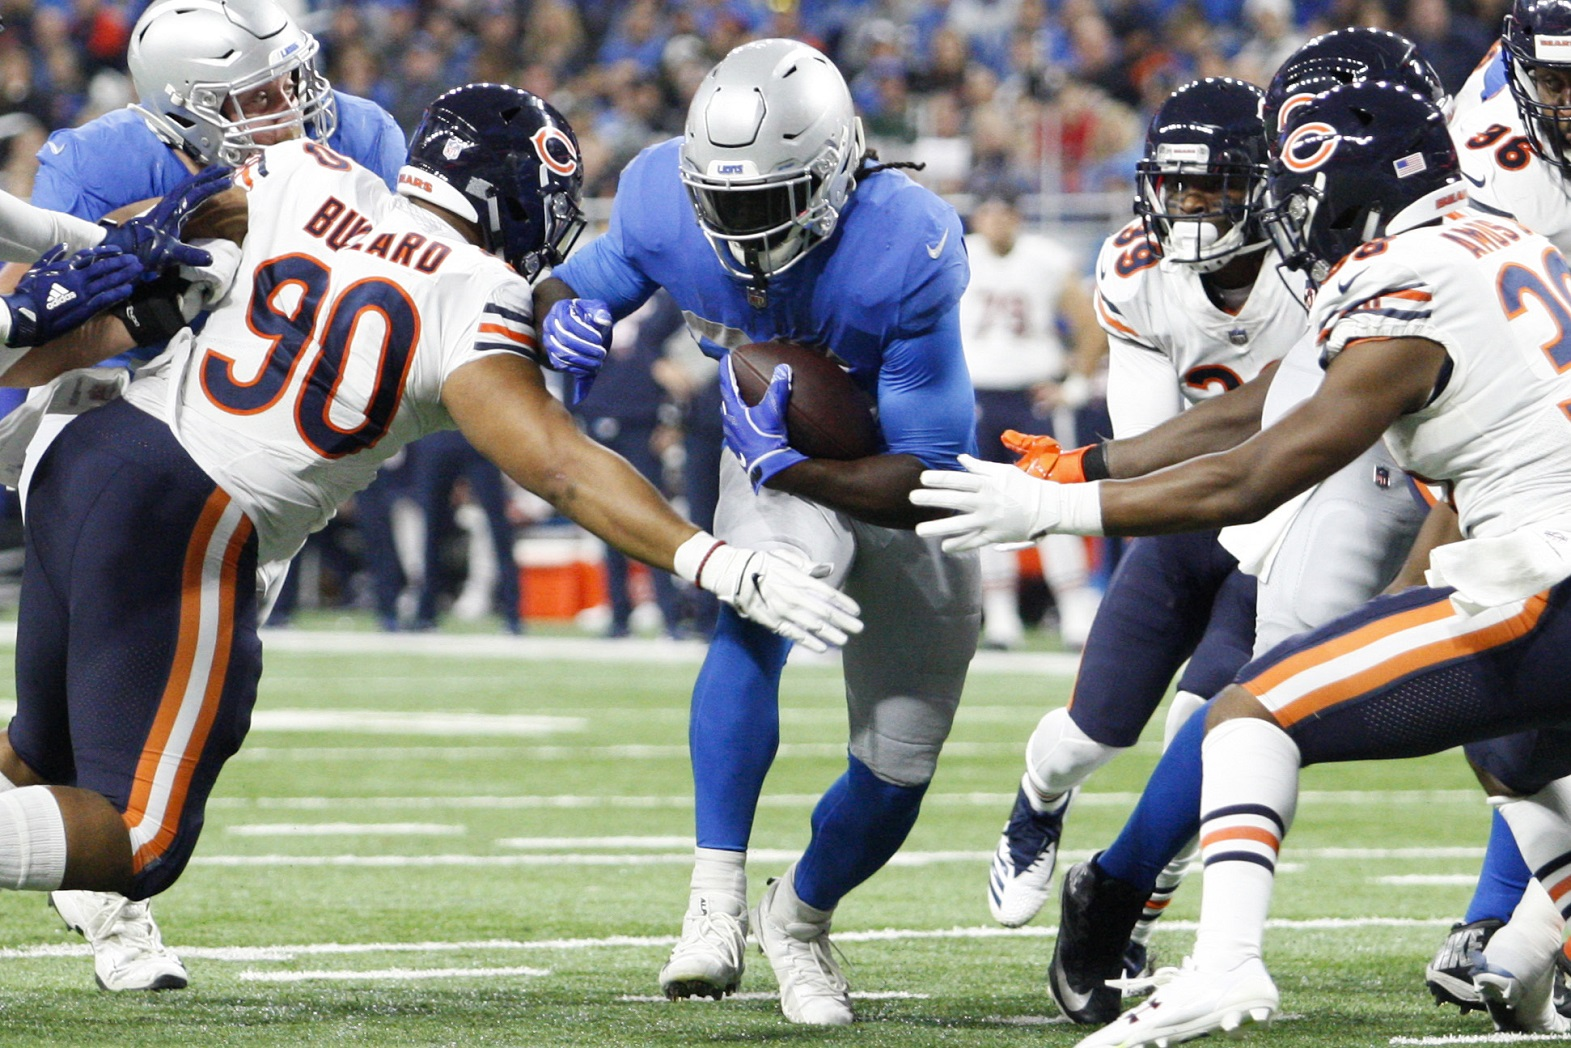 Week 13 Fantasy Football Sleepers Potential Breakouts Based On The